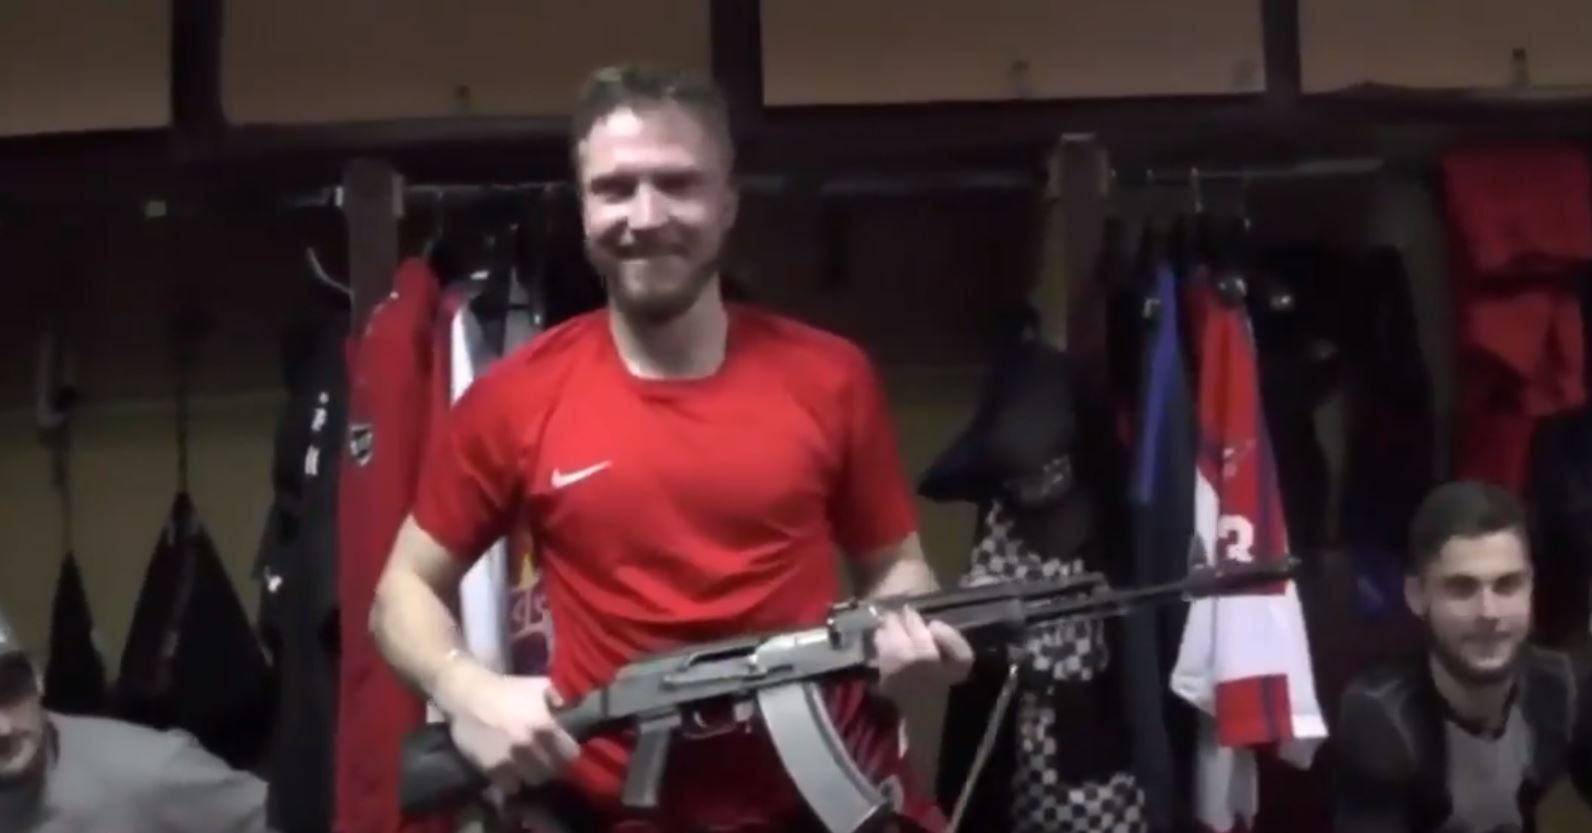 AK-47 awarded to Player of the Game in the Russian Hockey League